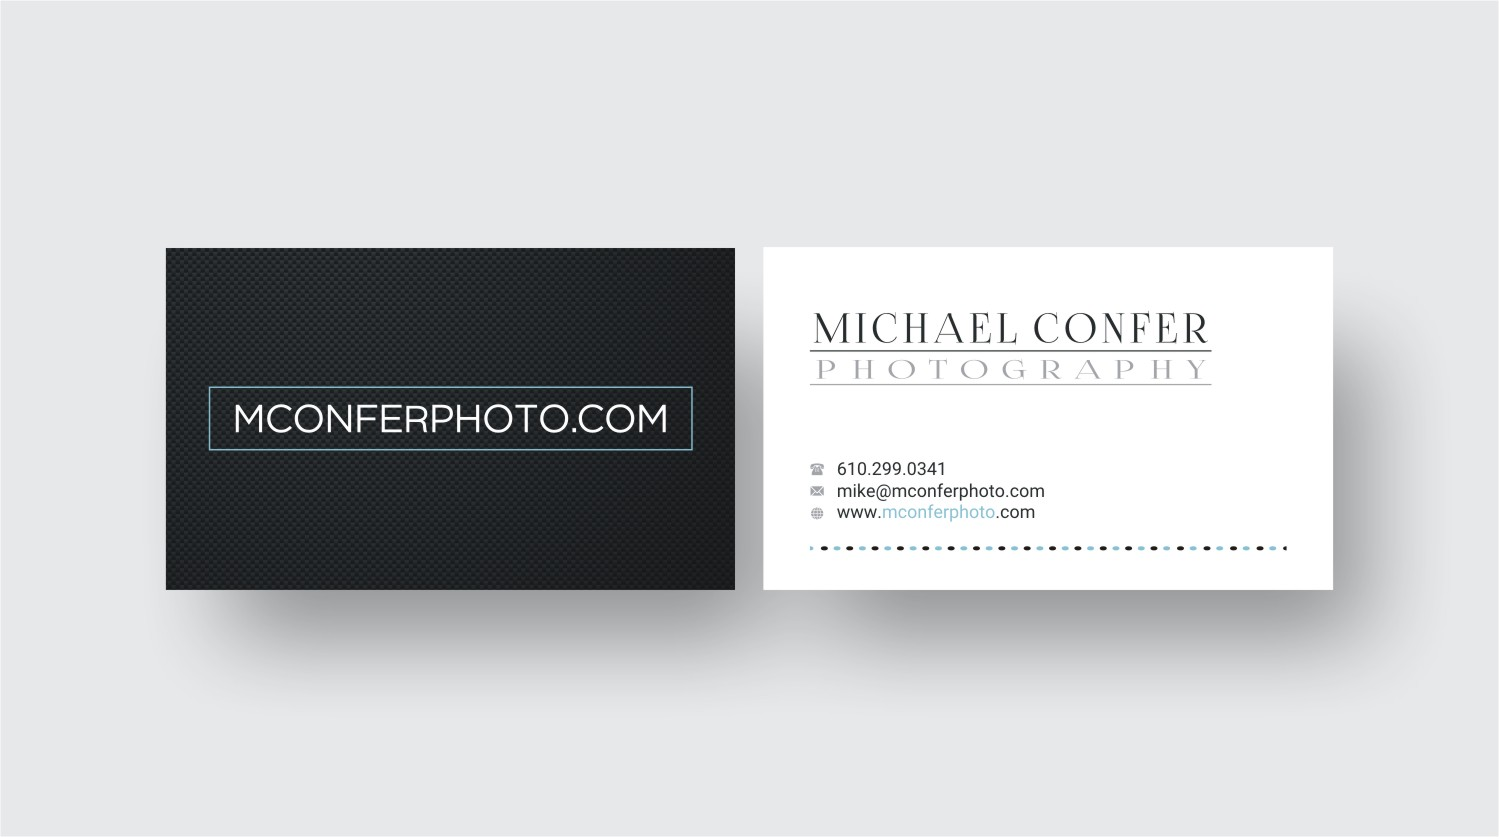 Modern, Professional, Professional Photography Business Card Design ...